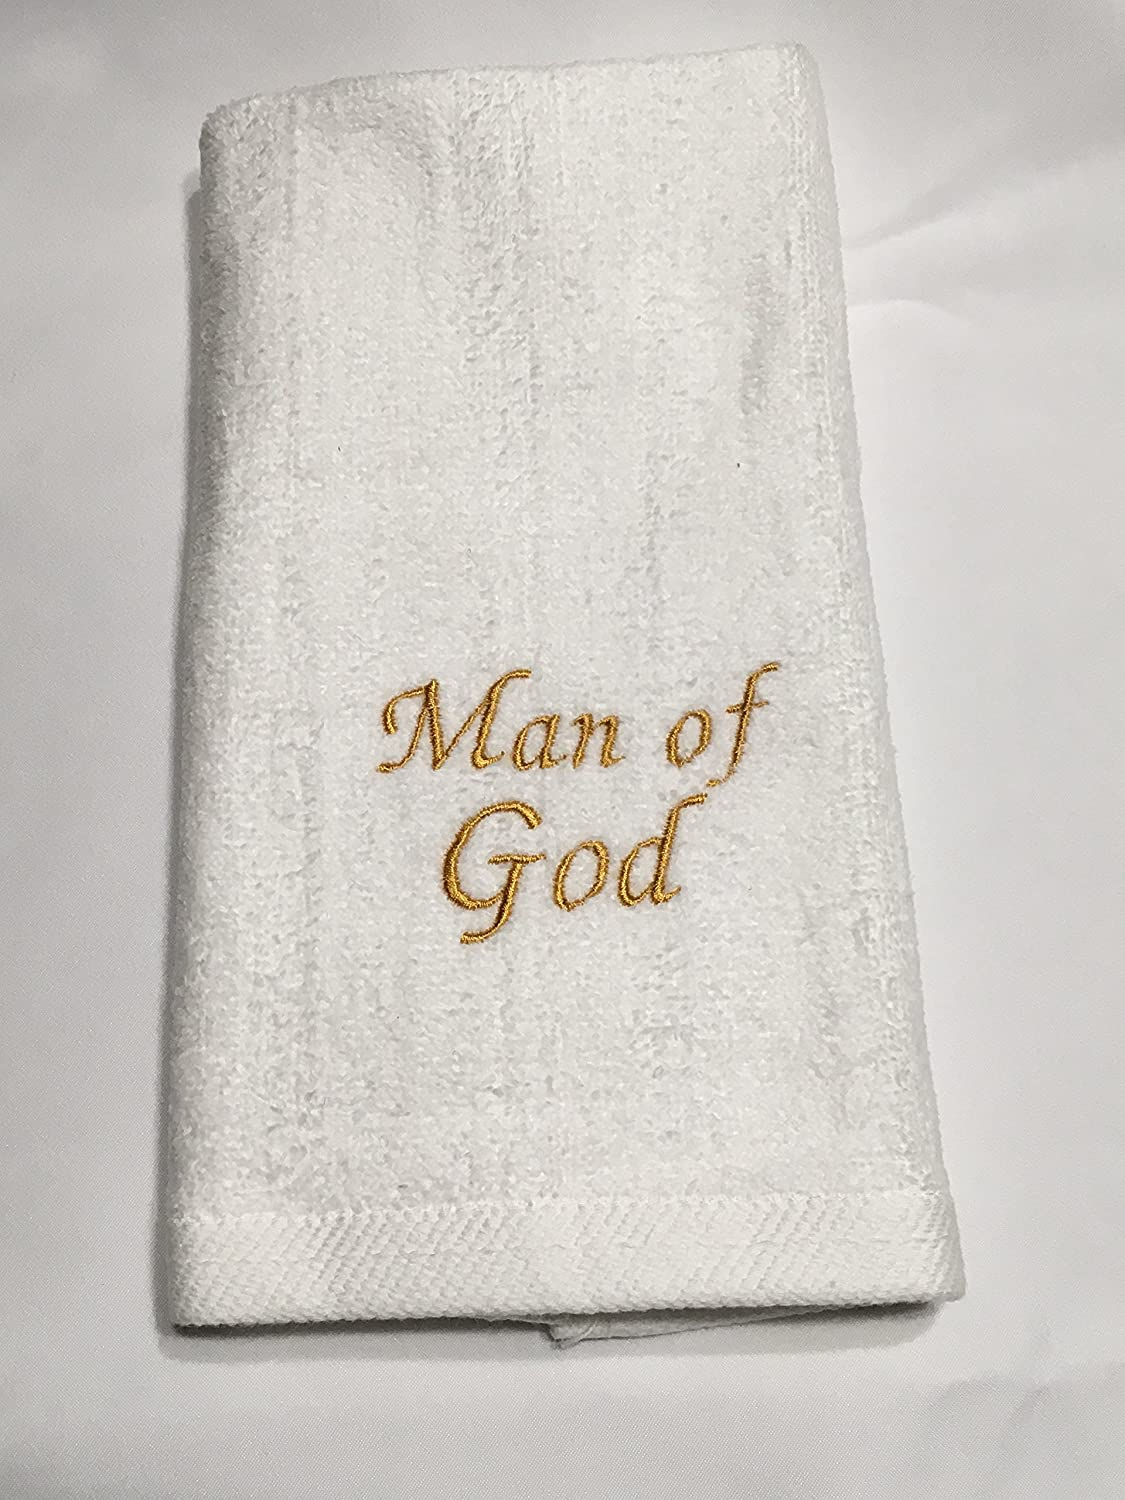 Christianwear Ministry Towel - Embroidered with